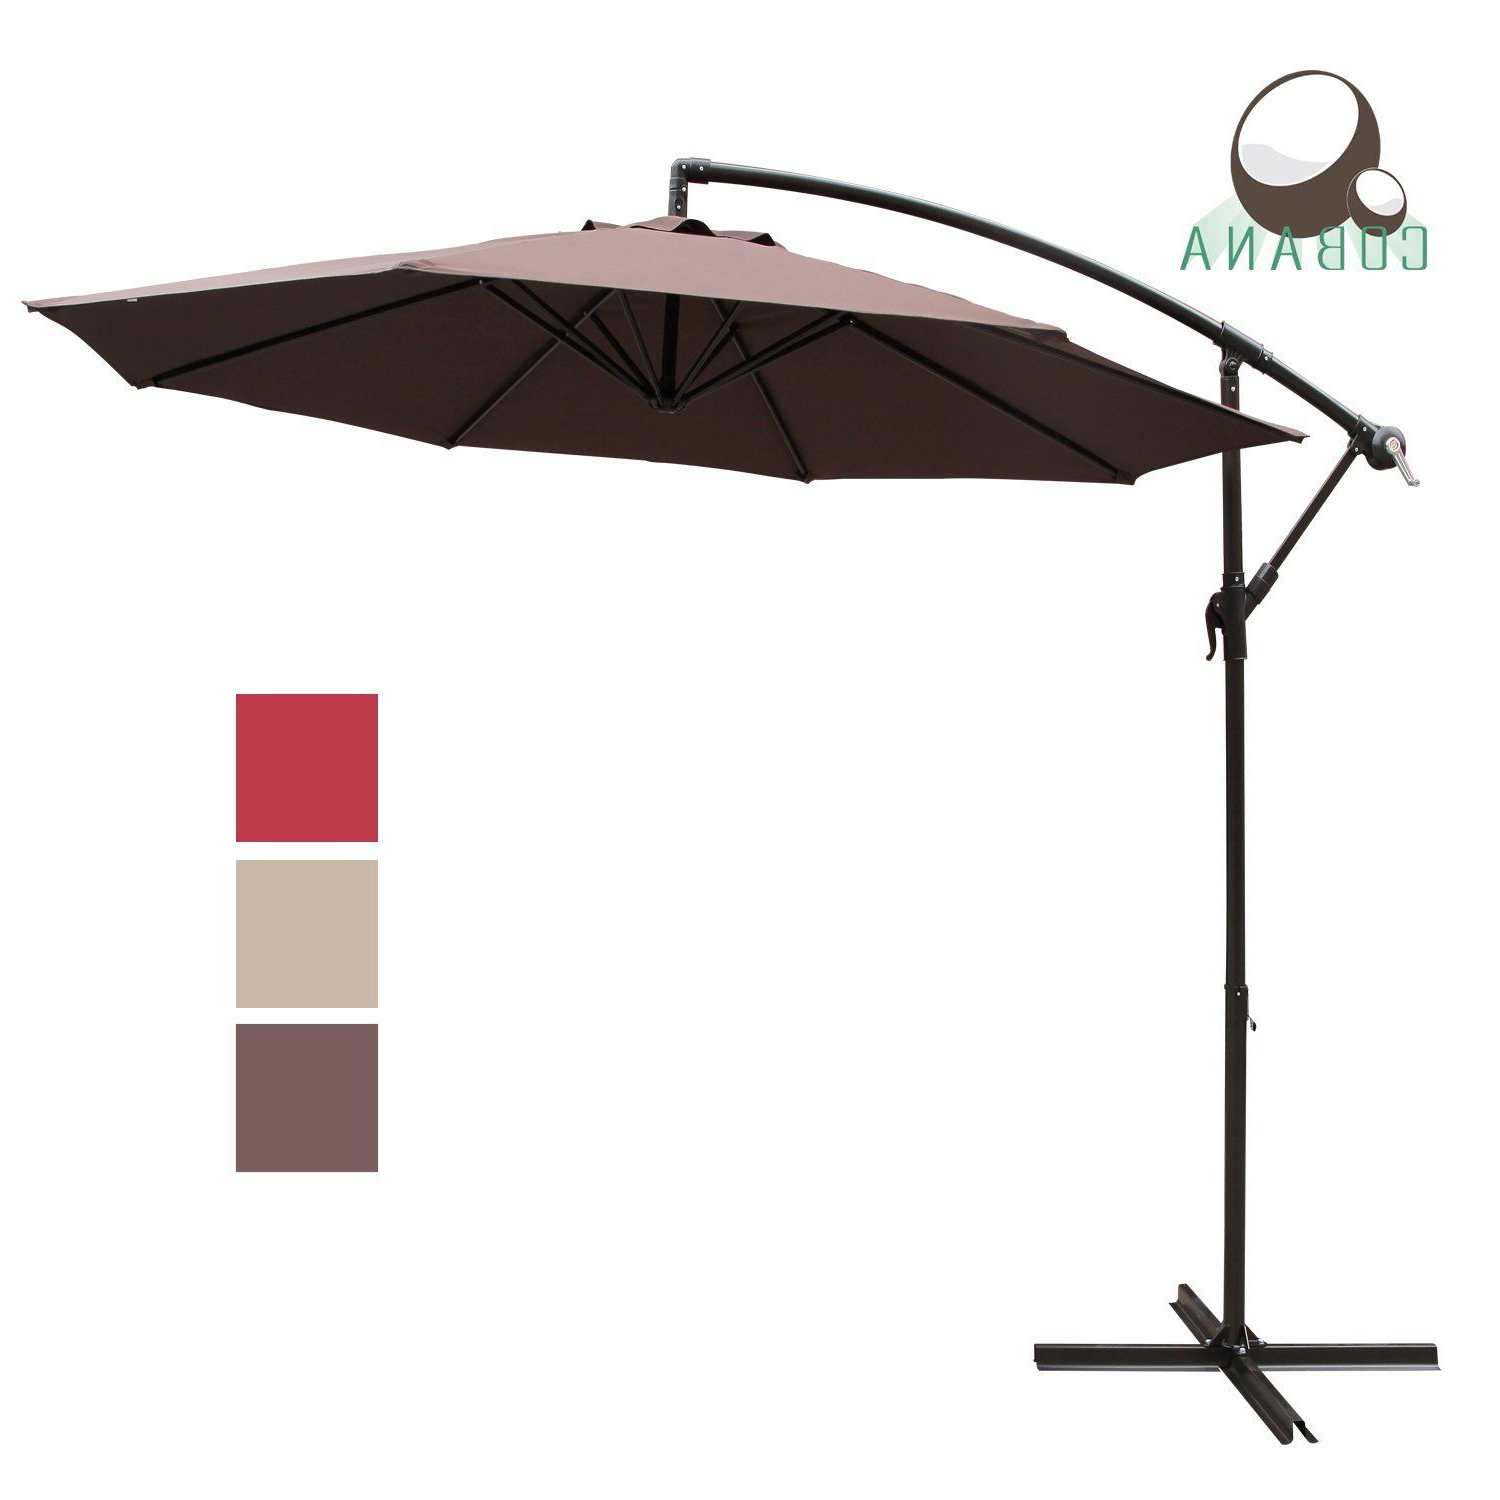 Cobana 10 Feet Cantilever Freestanding Patio Umbrella With Crank And With Regard To Well Known Jerrell Rectangular Market Umbrellas (View 3 of 20)